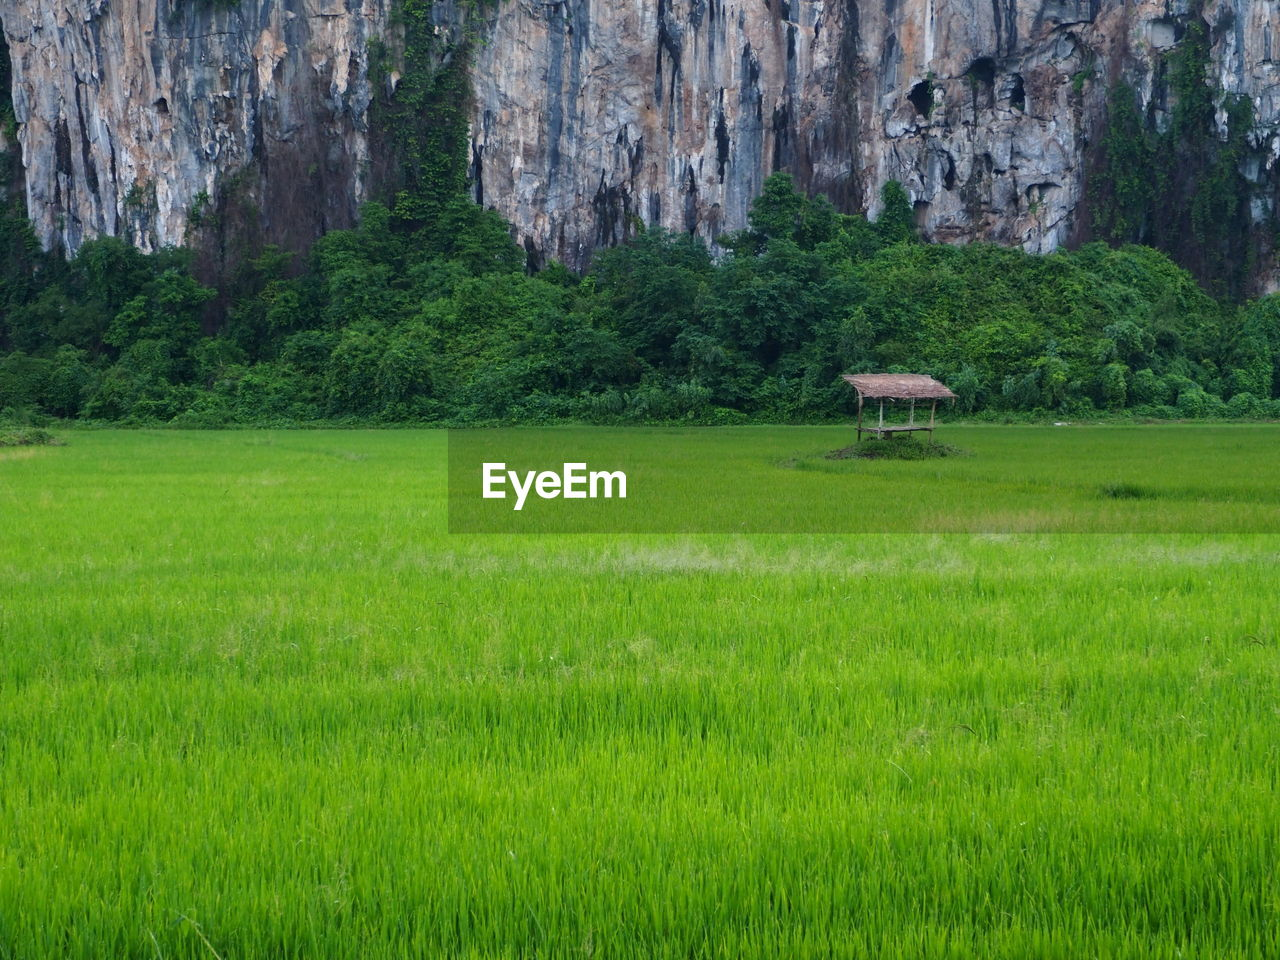 plant, grass, green color, land, tree, architecture, nature, environment, landscape, beauty in nature, day, built structure, scenics - nature, no people, field, tranquil scene, tranquility, mountain, building, foliage, outdoors